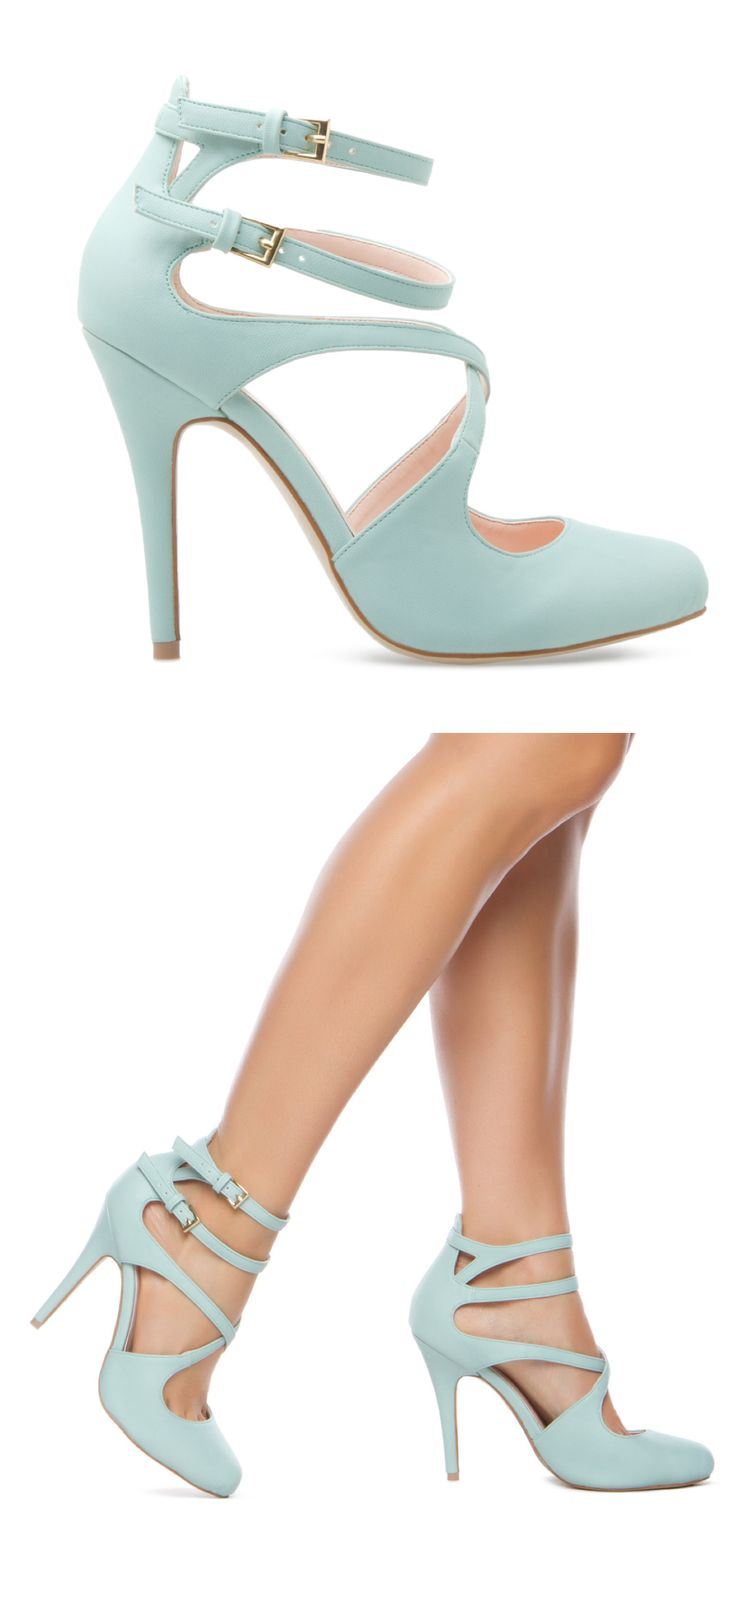 Mint heels - super cute for a vintage style wedding